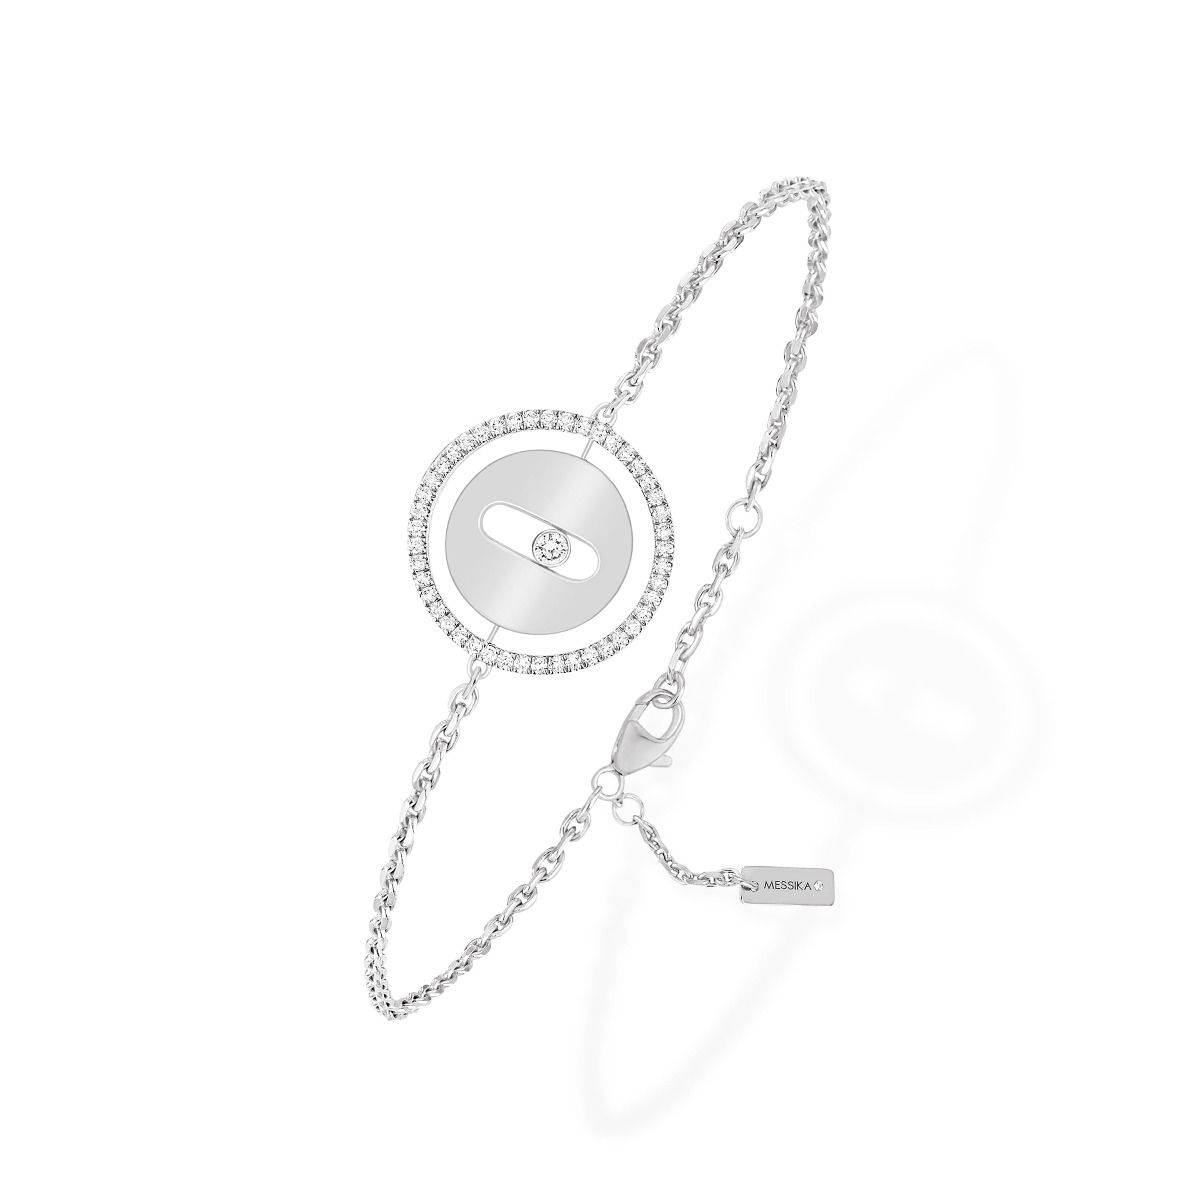 Lucky Move Pm Bracelet - White Gold